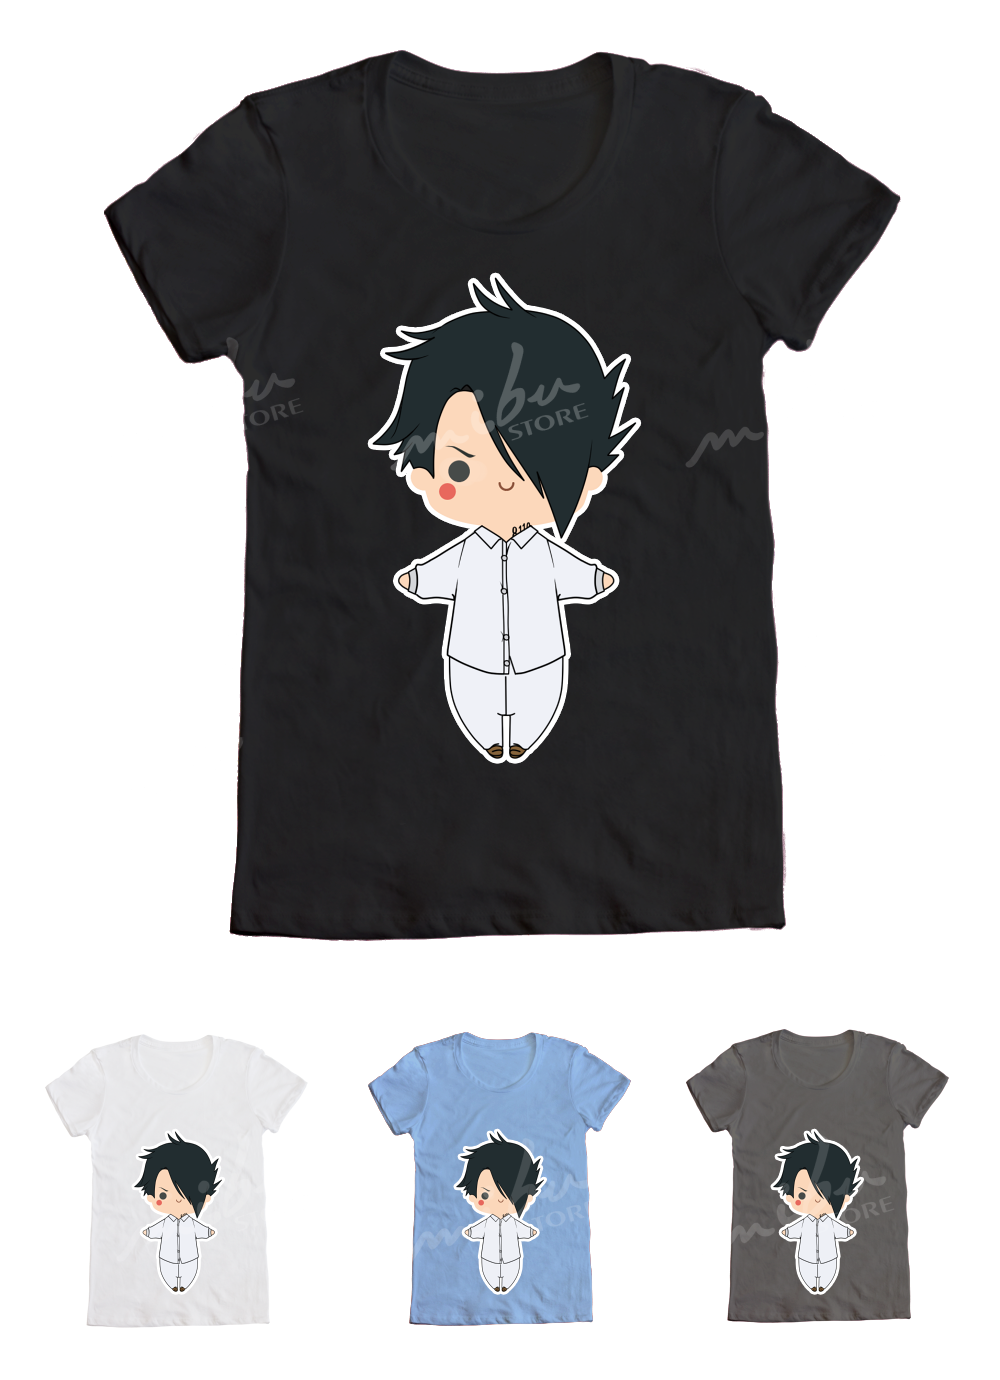 The Promised Neverland - Ray - T-Shirt from MibuStore